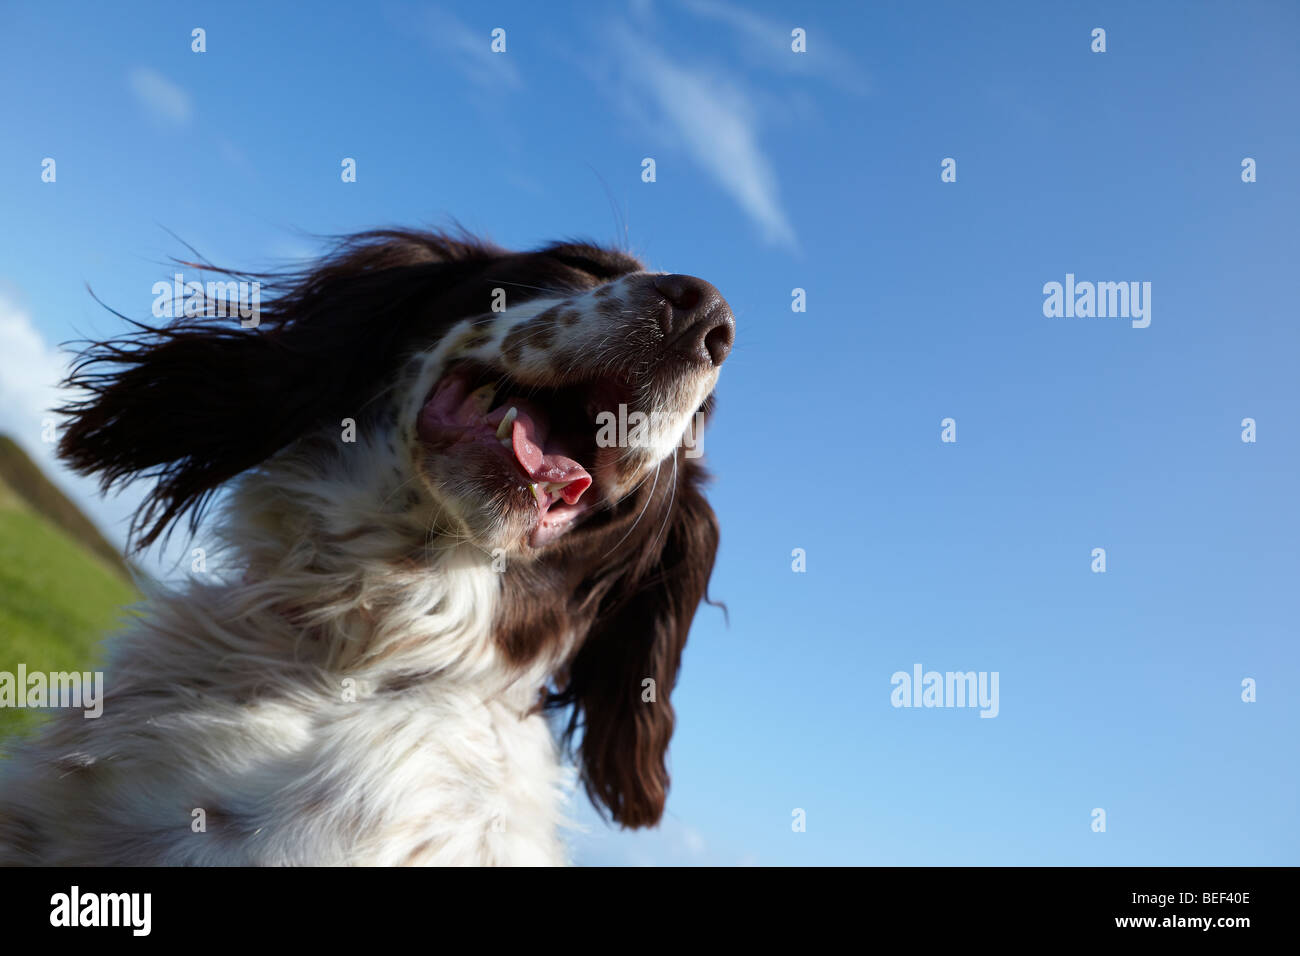 Dog Mouth Wide Open Stock Photos & Dog Mouth Wide Open Stock Images ...